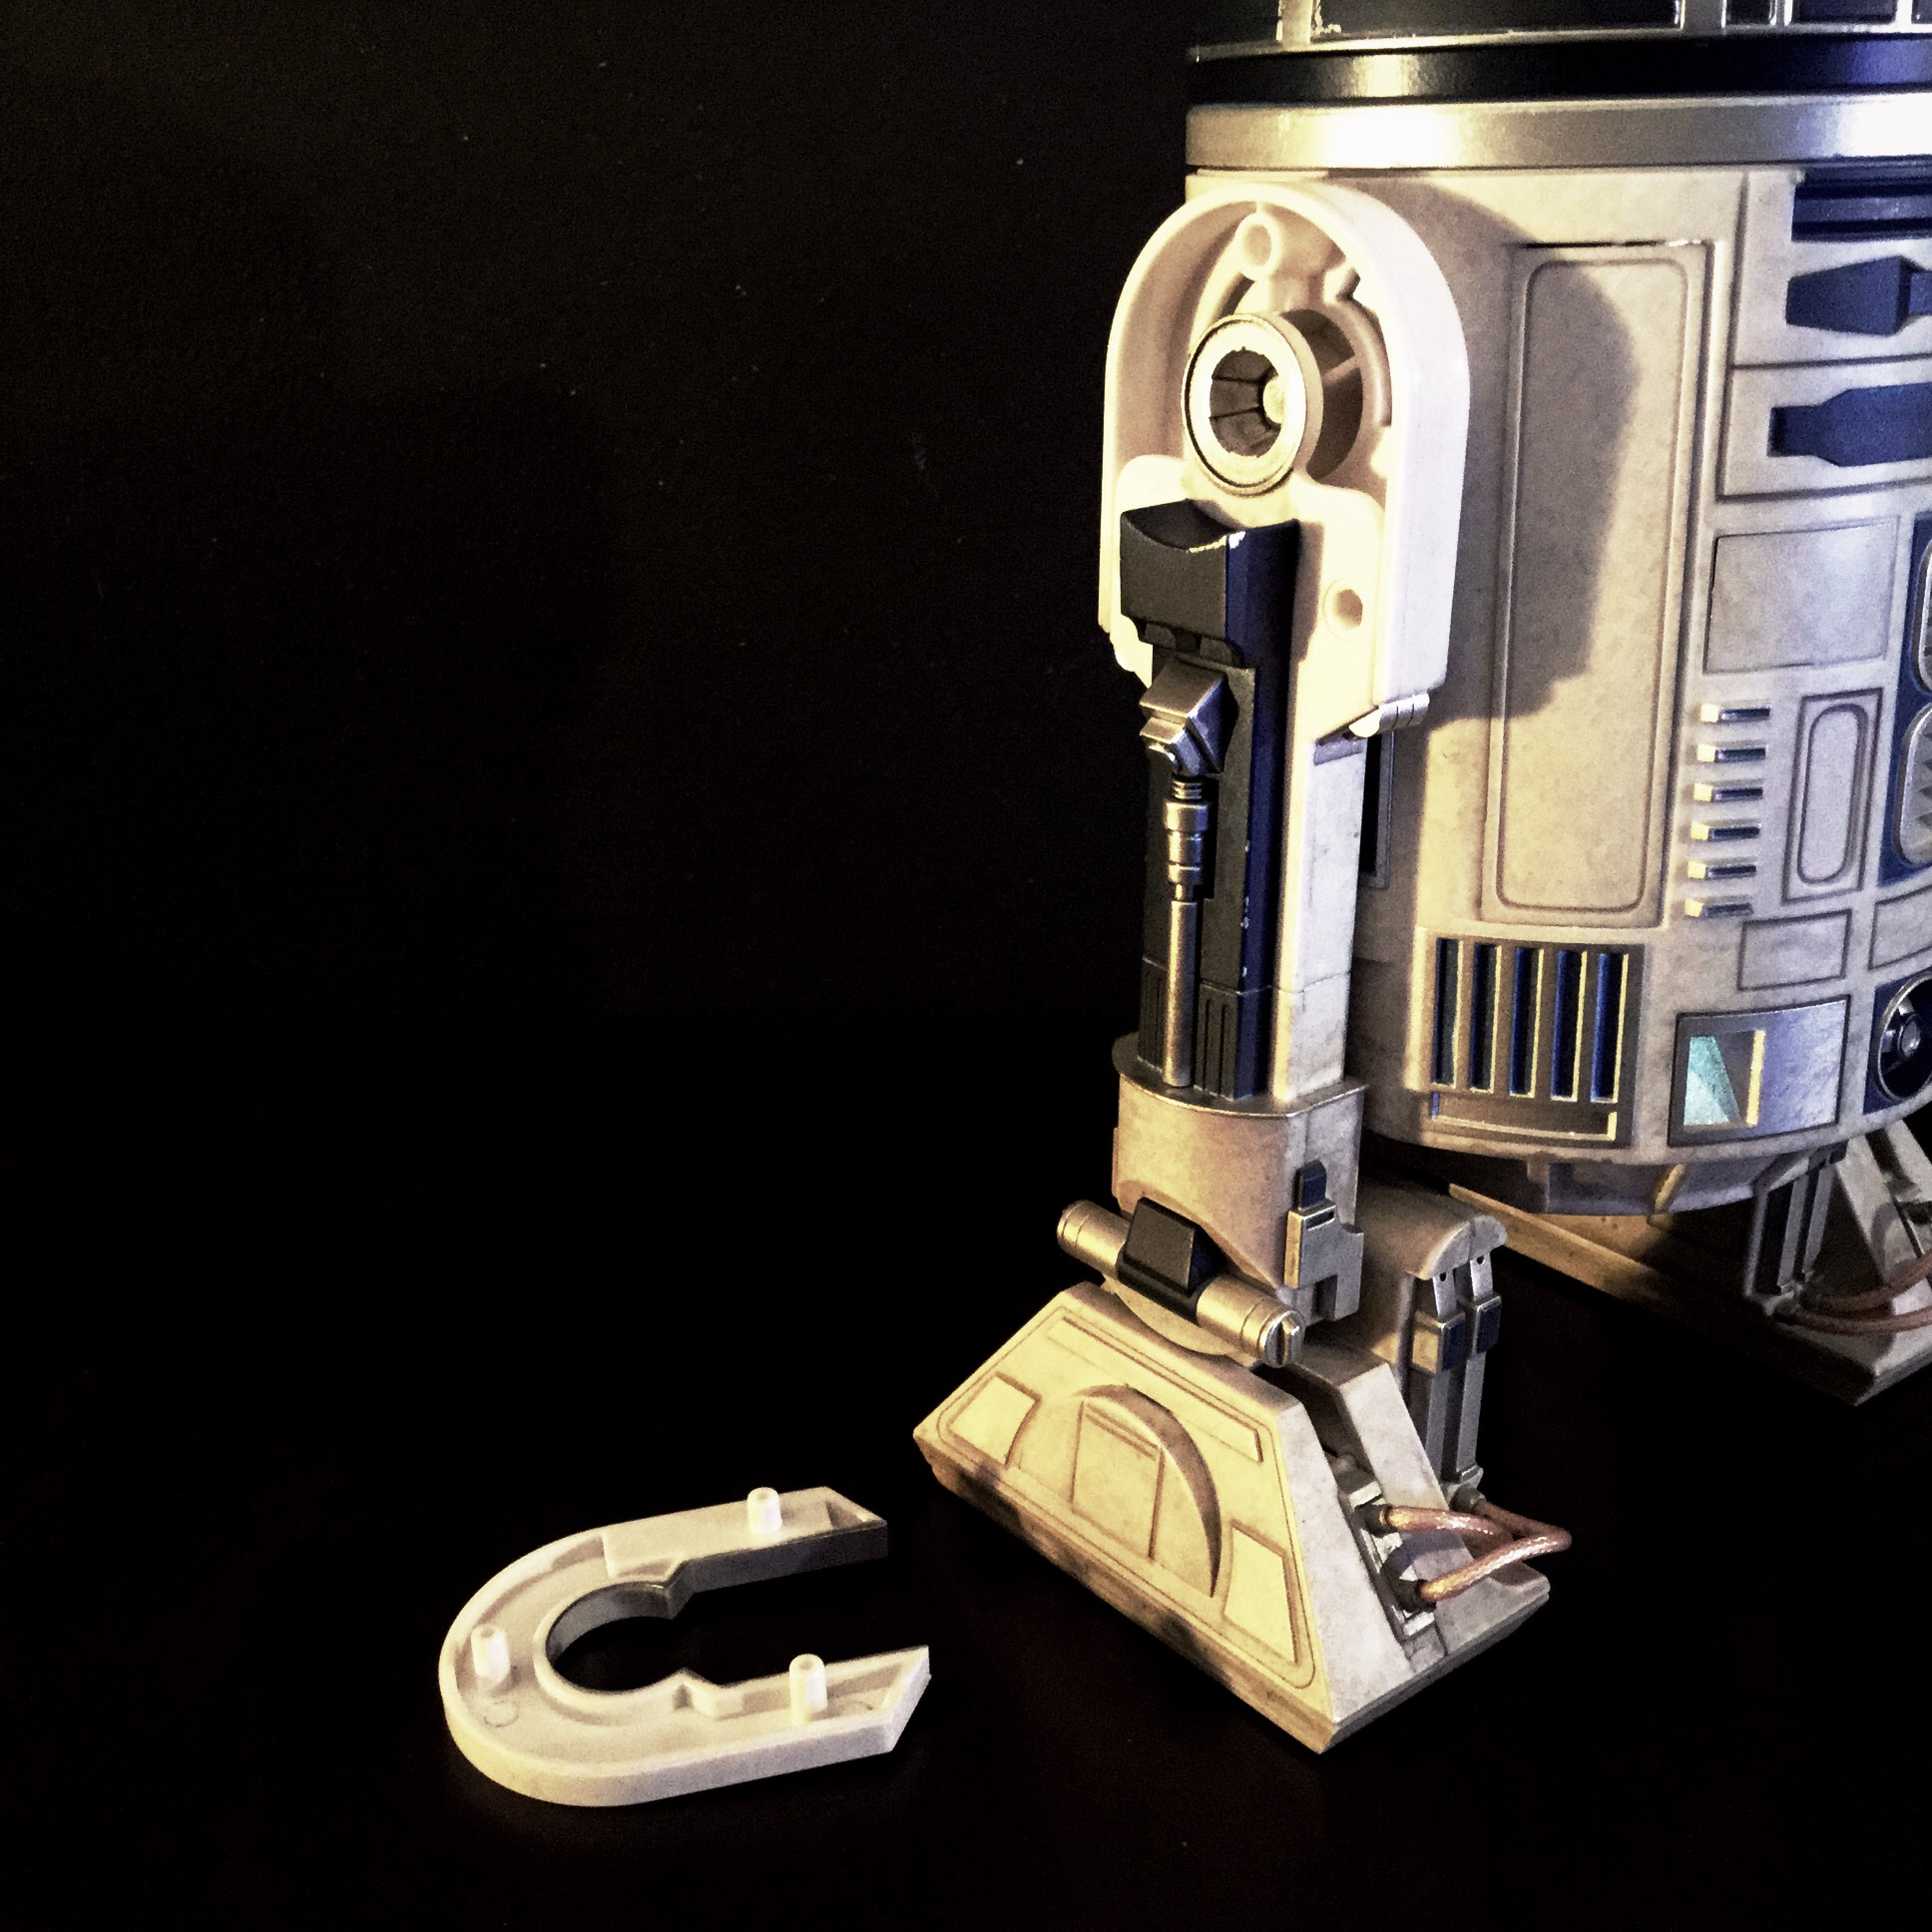 [REVIEW] Star Wars : R2-D2 Deluxe (Sideshow) 16418181036_060be5cba0_o